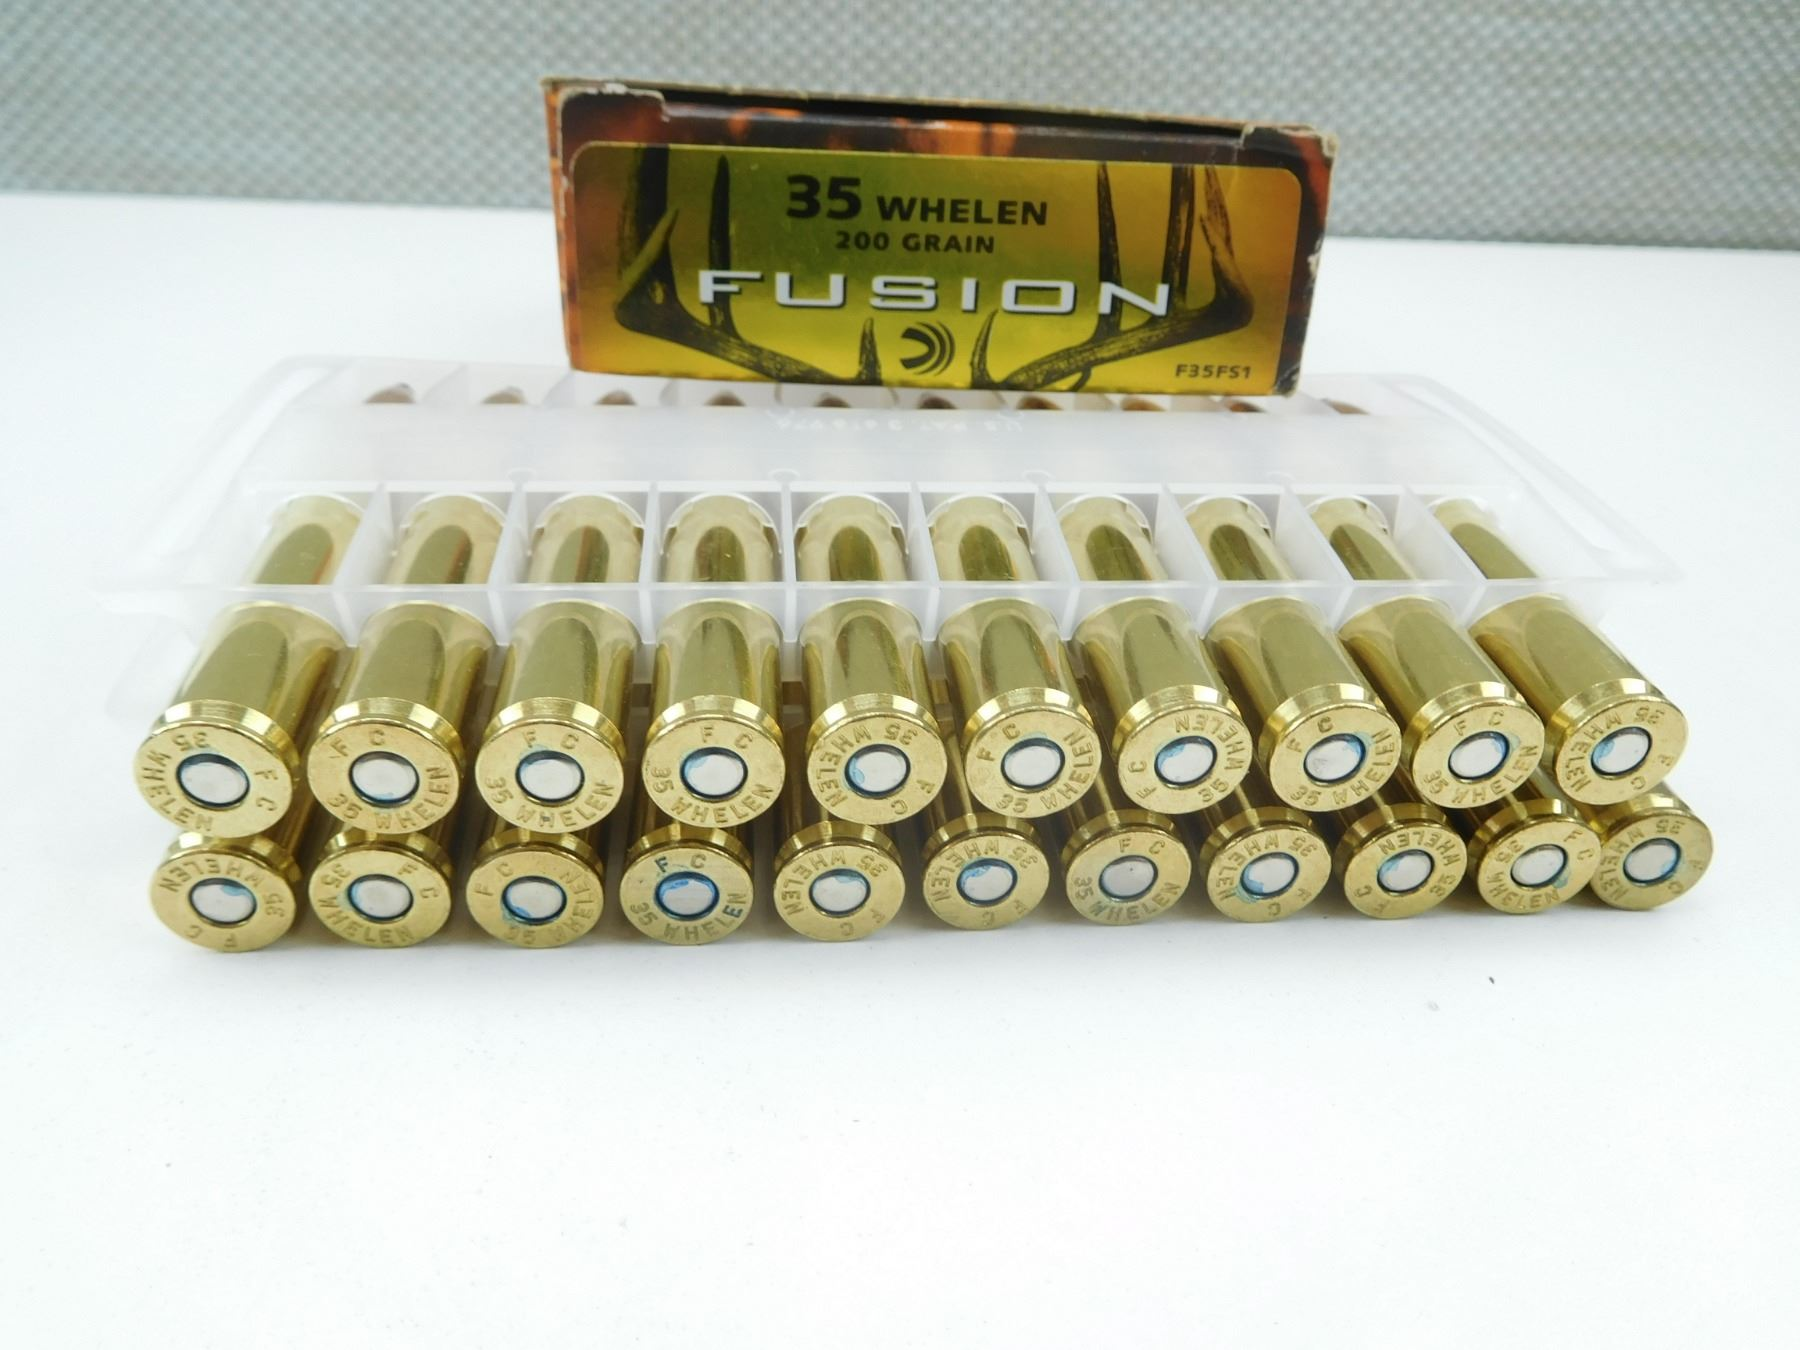 Madison : 35 whelen ammo for sale canada